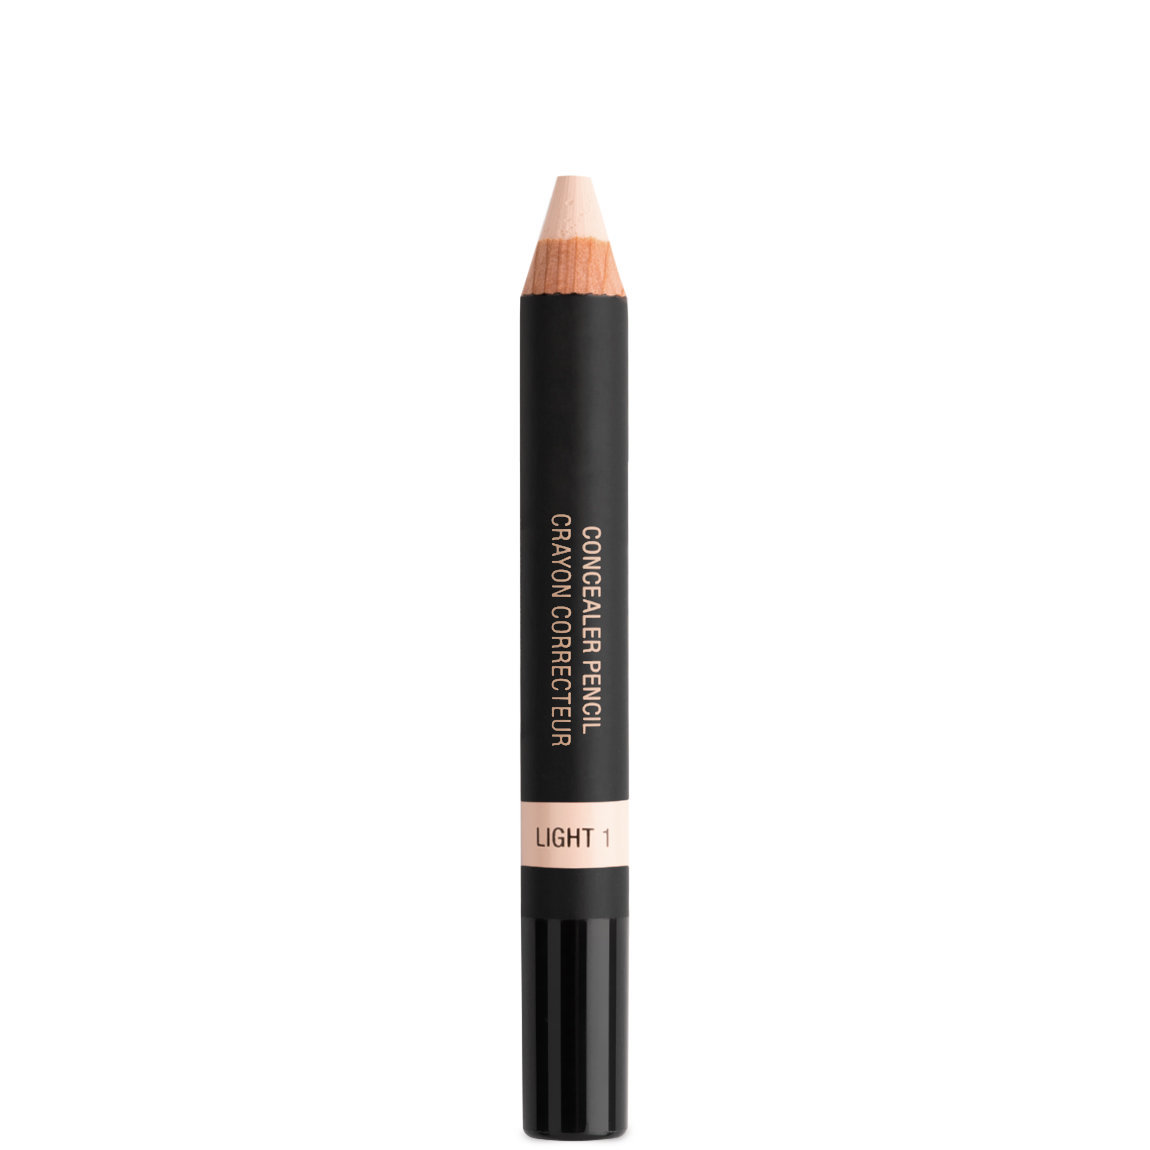 Nudestix Concealer Pencil Light 1 alternative view 1.